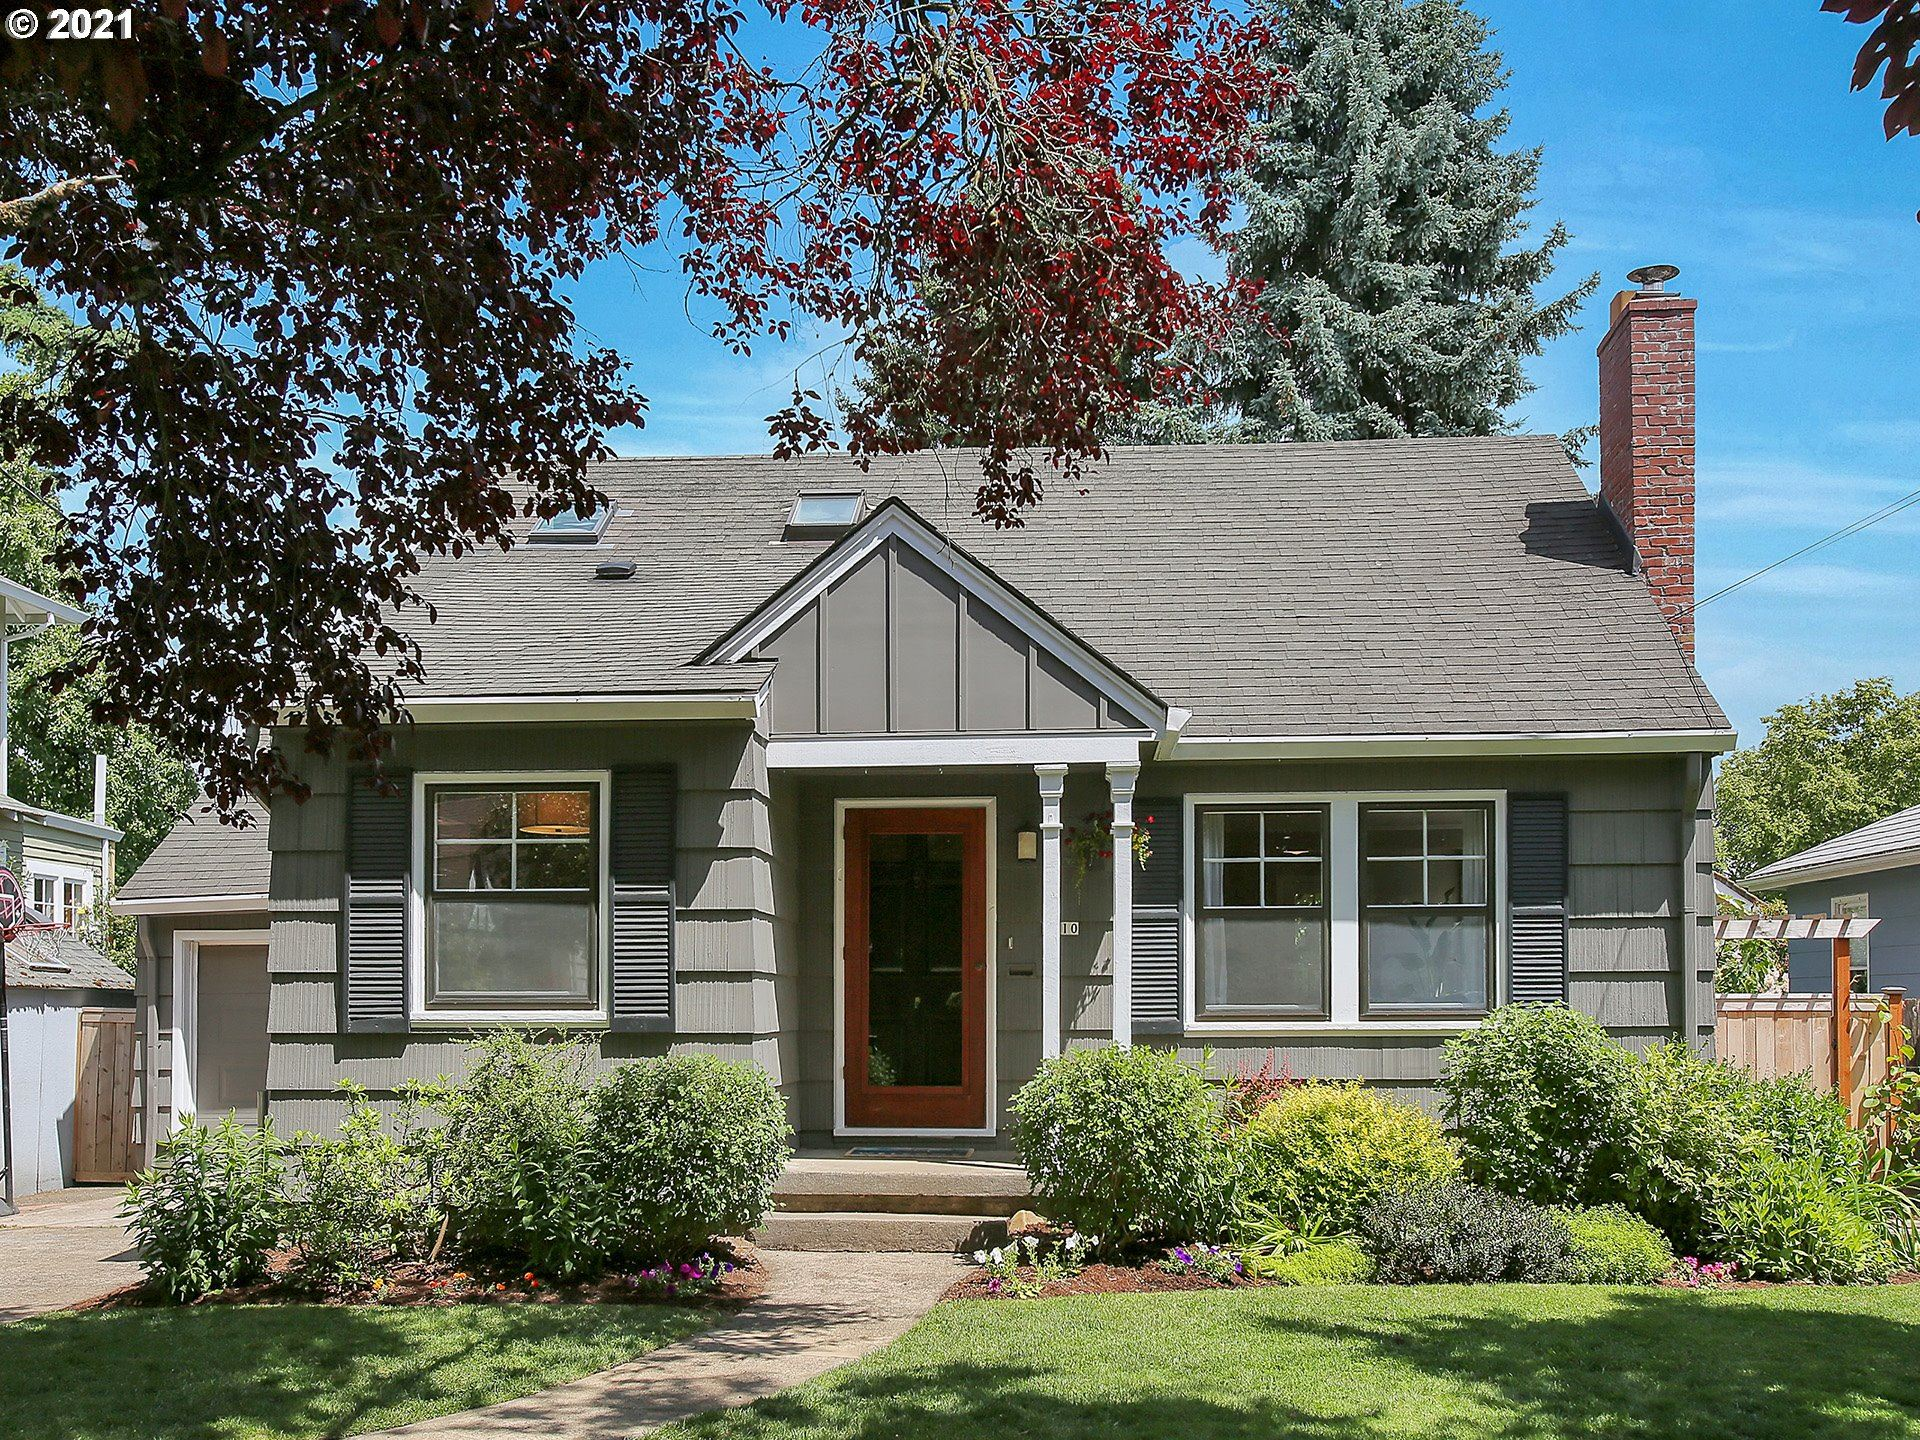 7710 SE 18TH AVE, Portland, OR 97202 - MLS#: 21035192